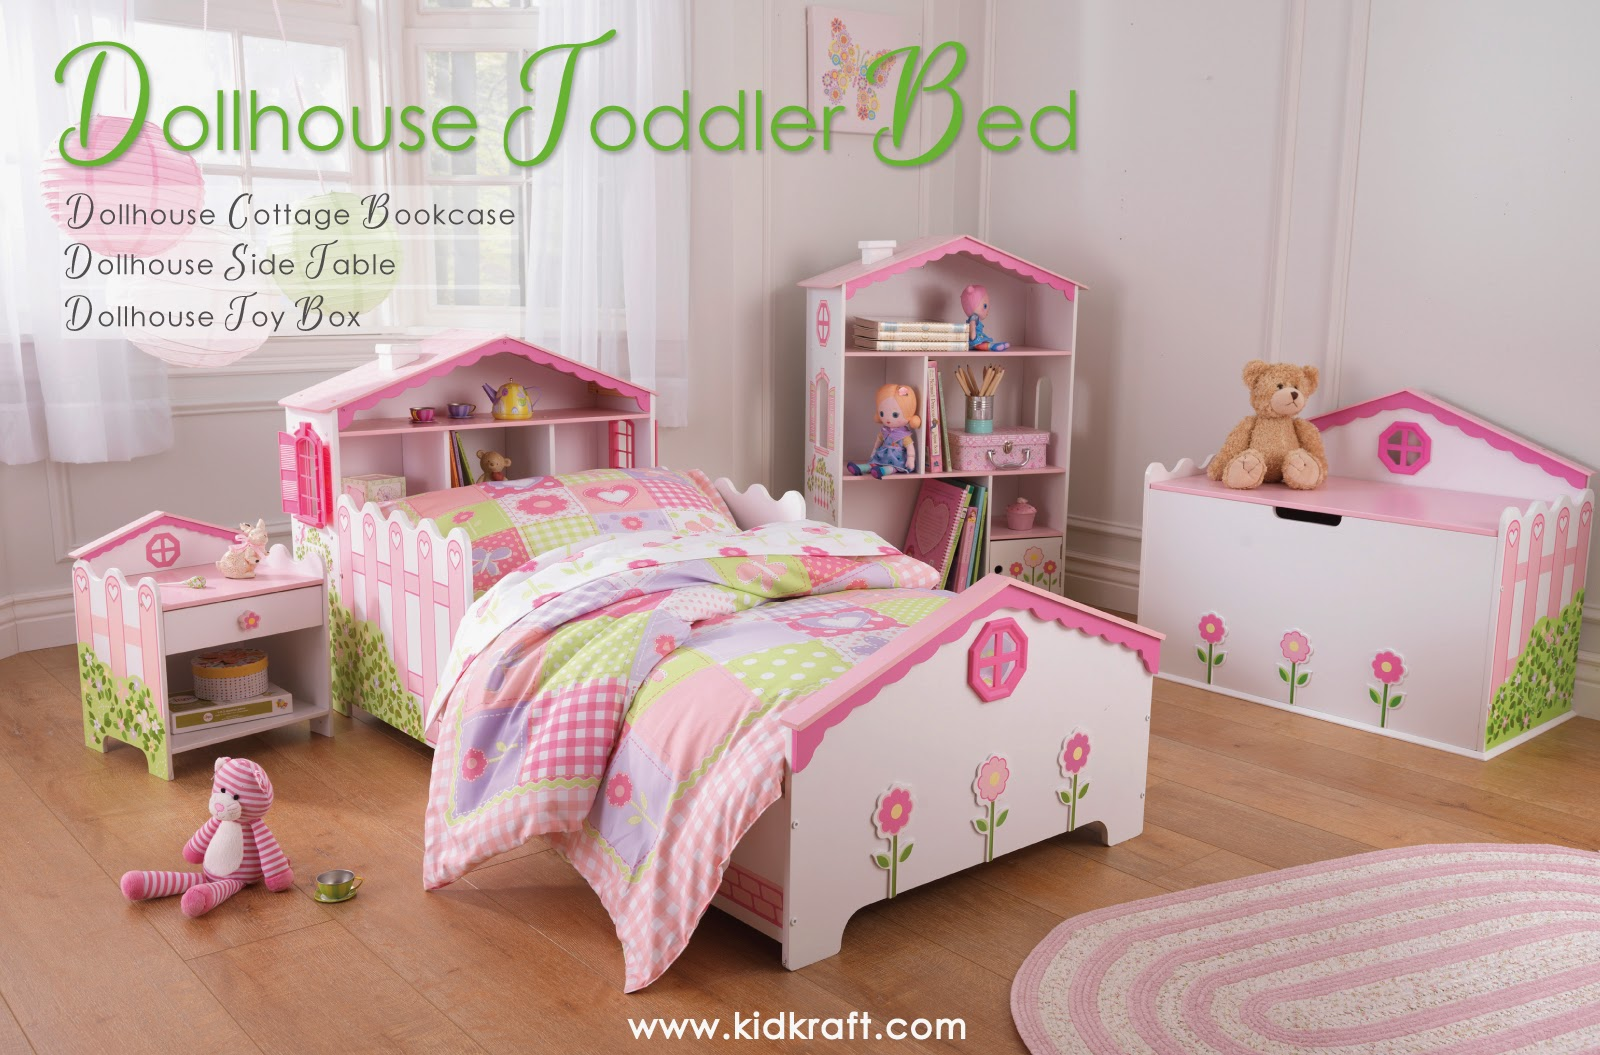 Toddler Dollhouse Kidkraft Toys And Furniture